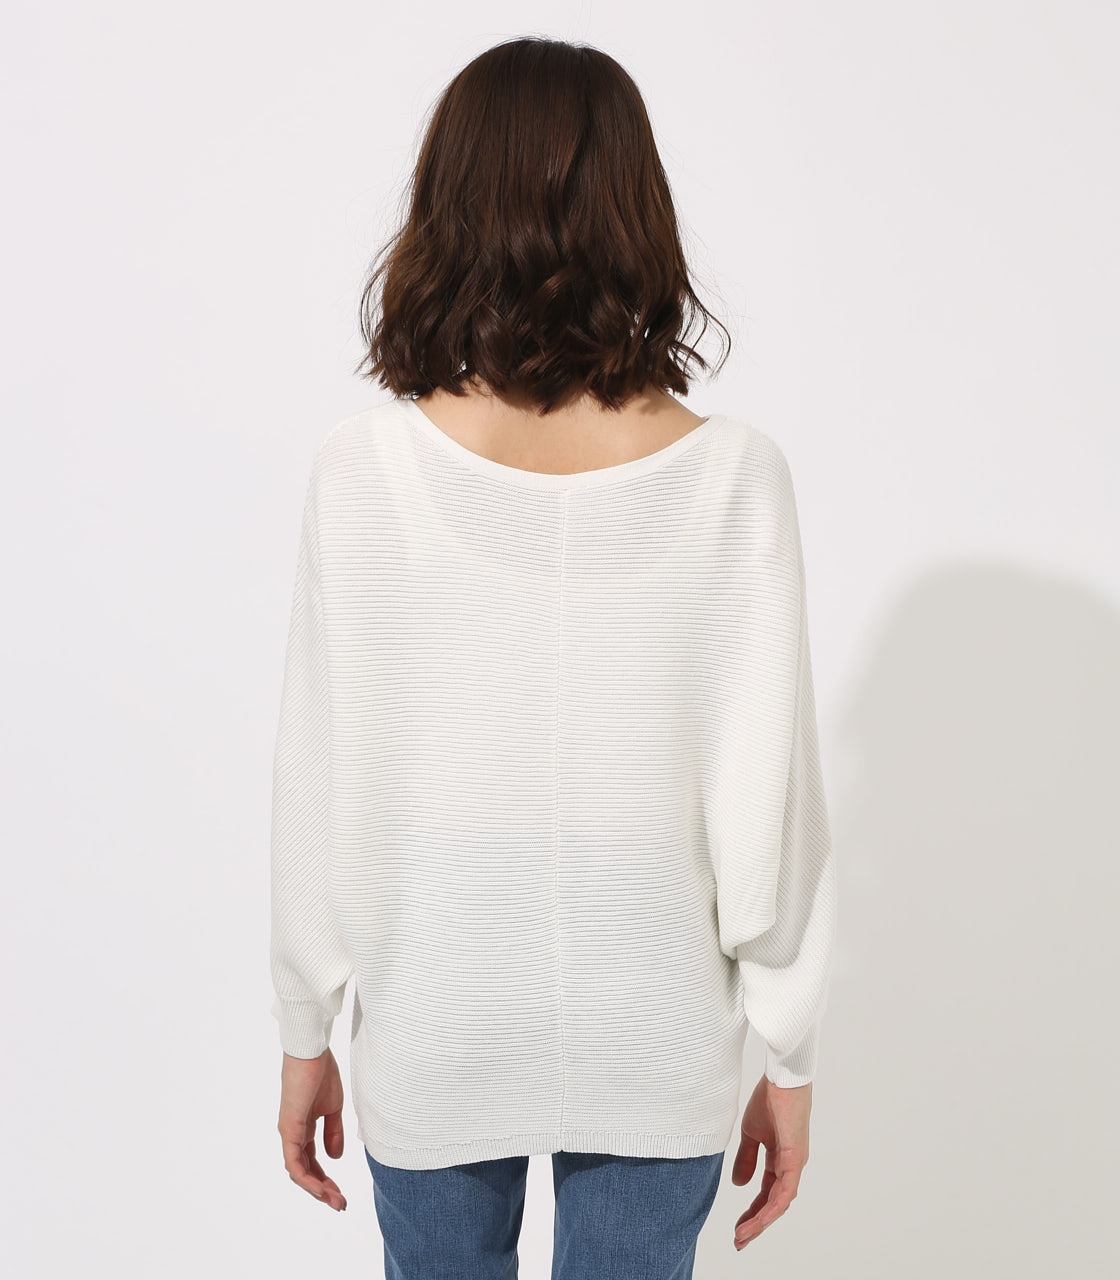 【AZUL BY MOUSSY】2WAY DOLMAN KNIT TOPS 詳細画像 O/WHT 7